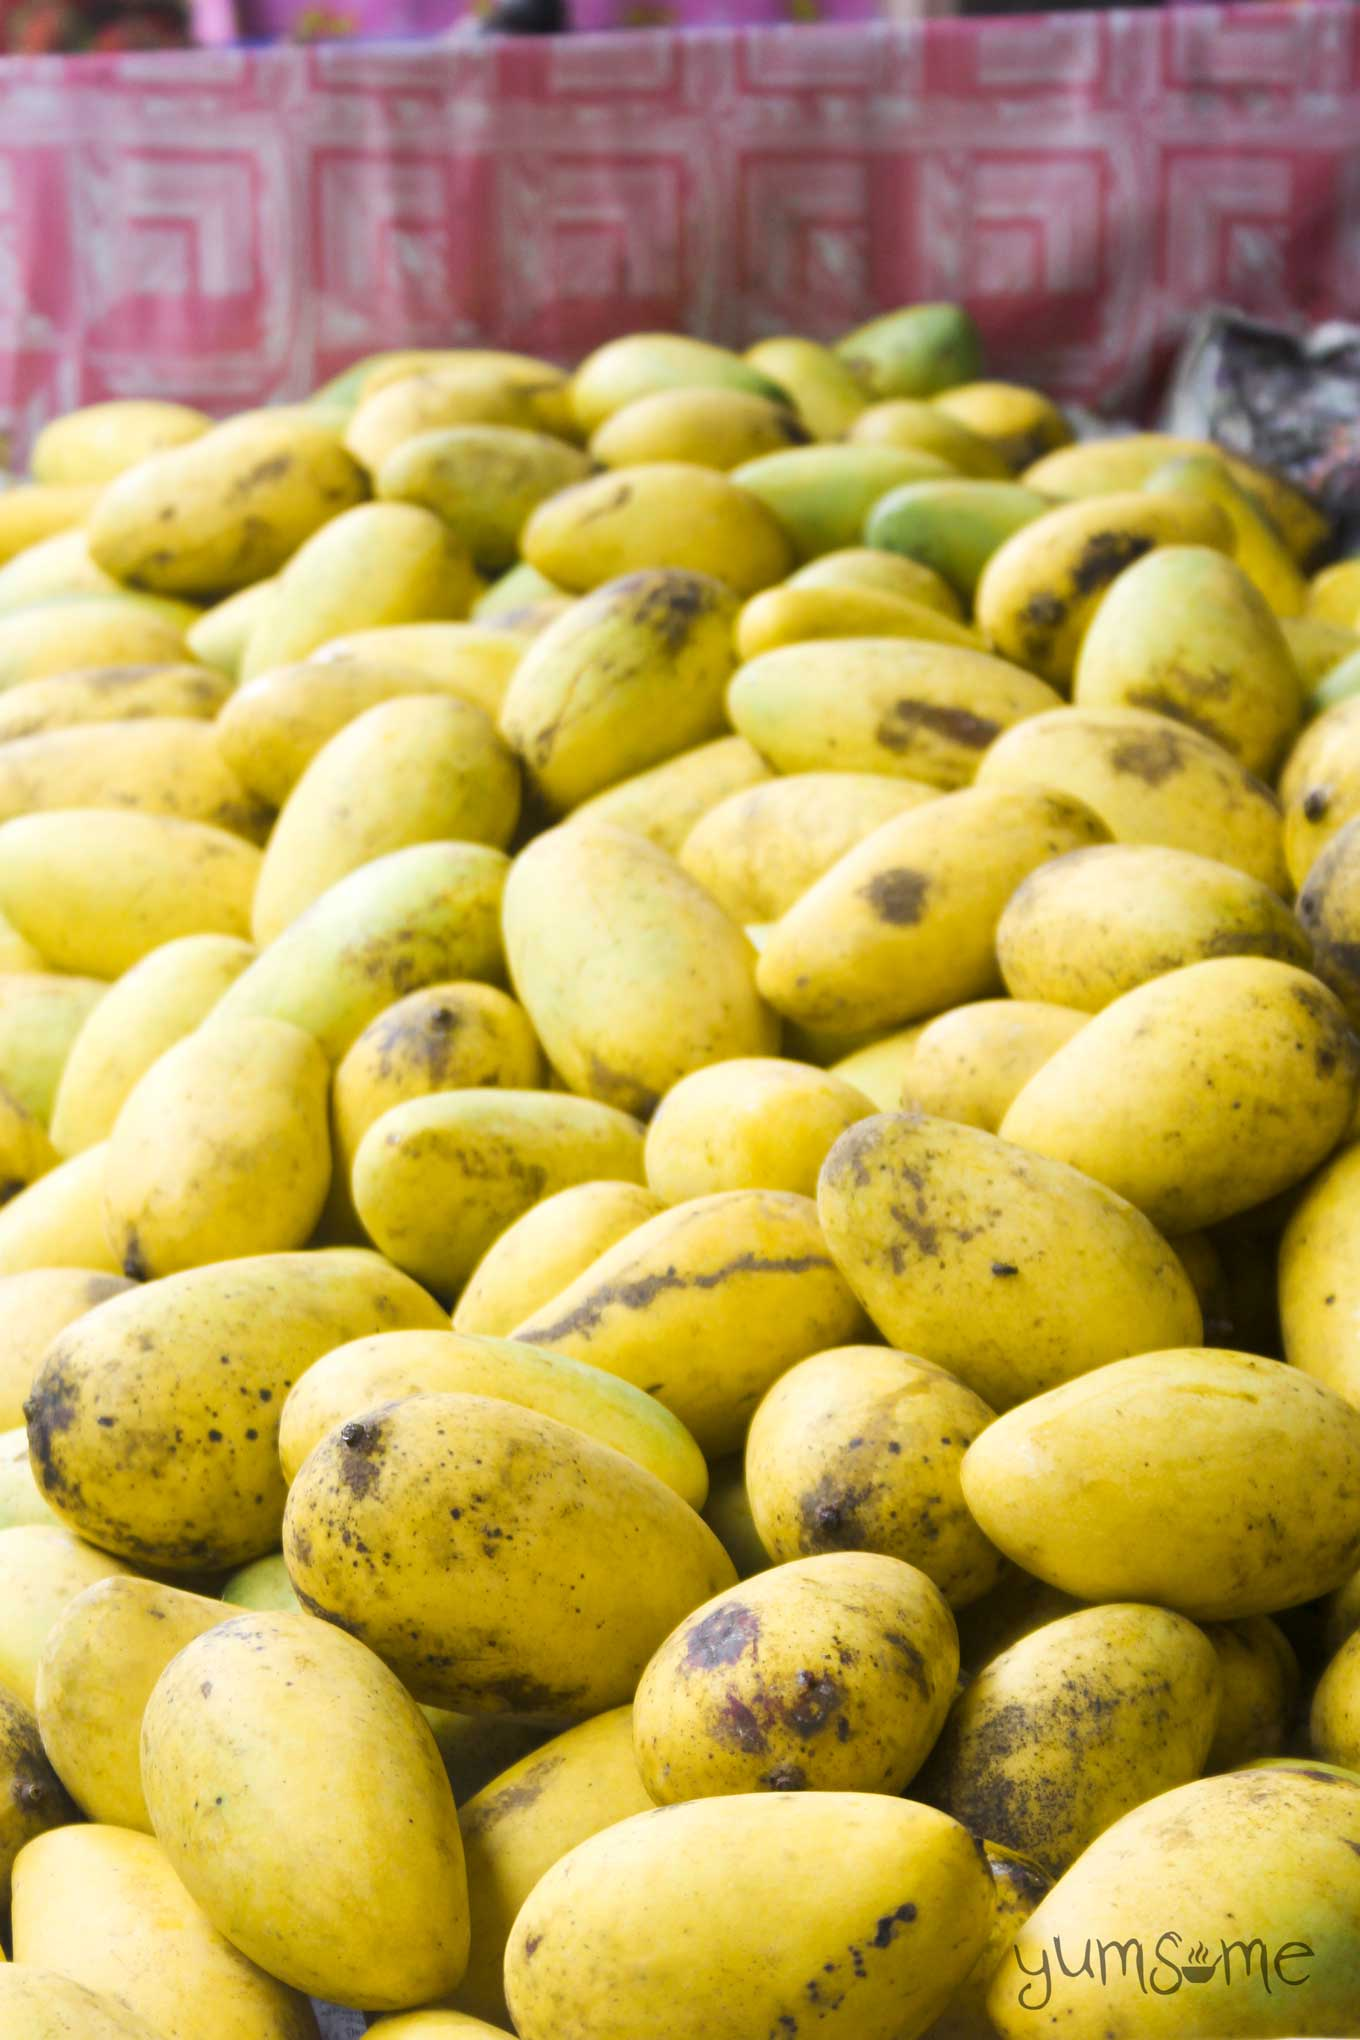 ripe yellow mangoes on a market stall in Thailand | yumsome.com